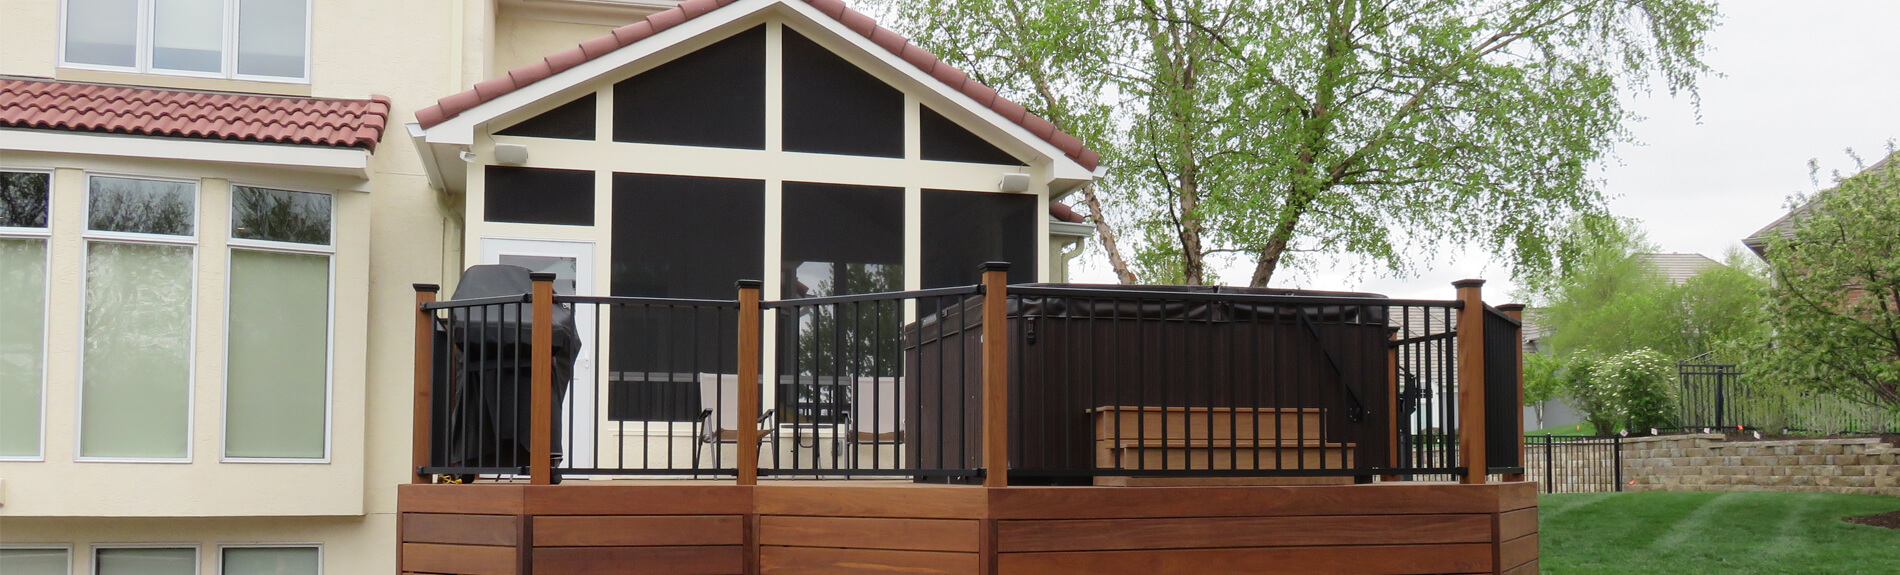 Backyard screened porch and deck with outdoor kitchen and hot tub